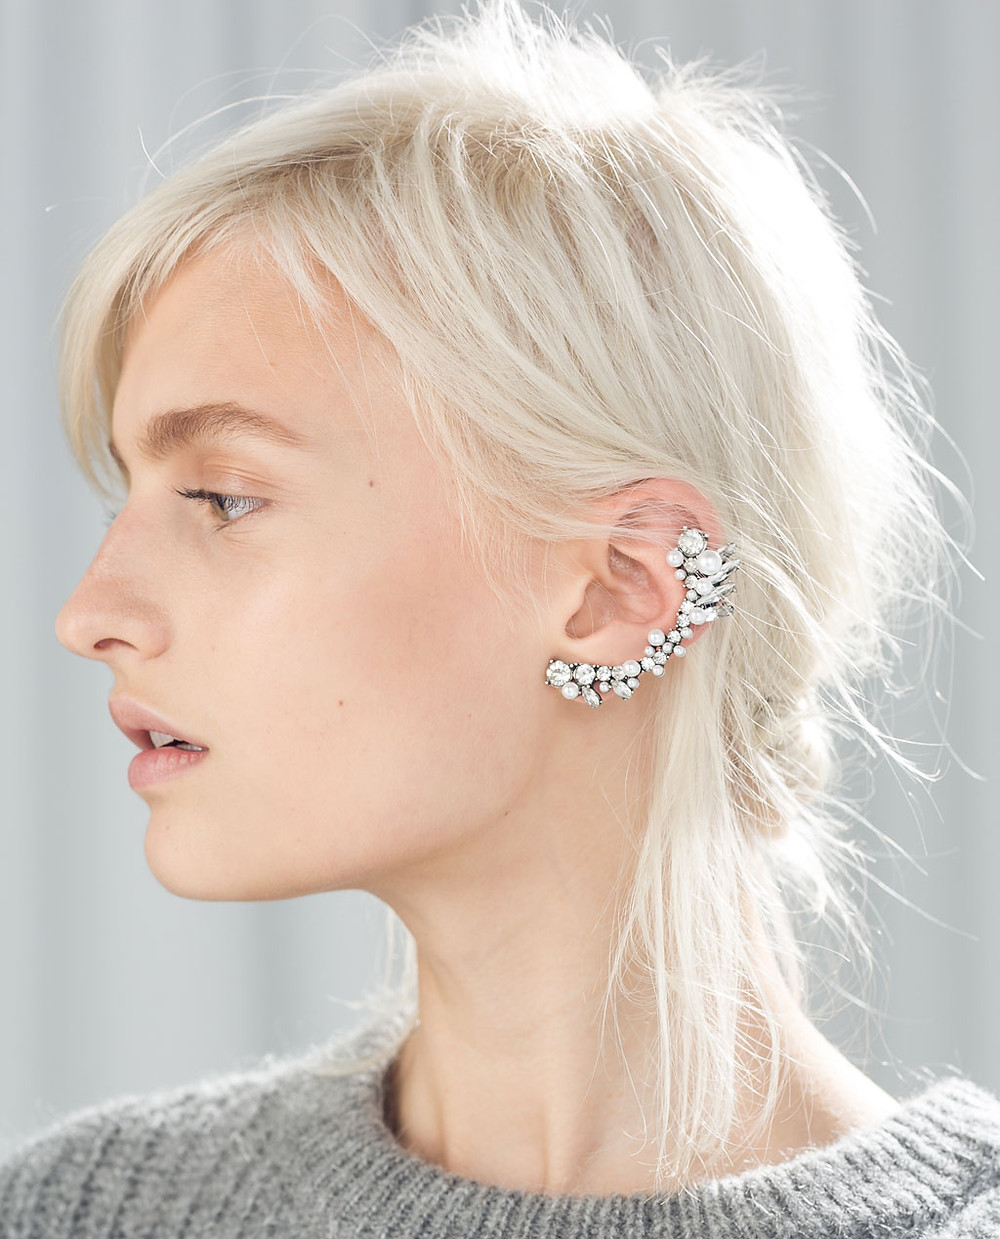 bomb-product-of-the-day-zara-pearl-and-stone-earring-fbd3.jpg